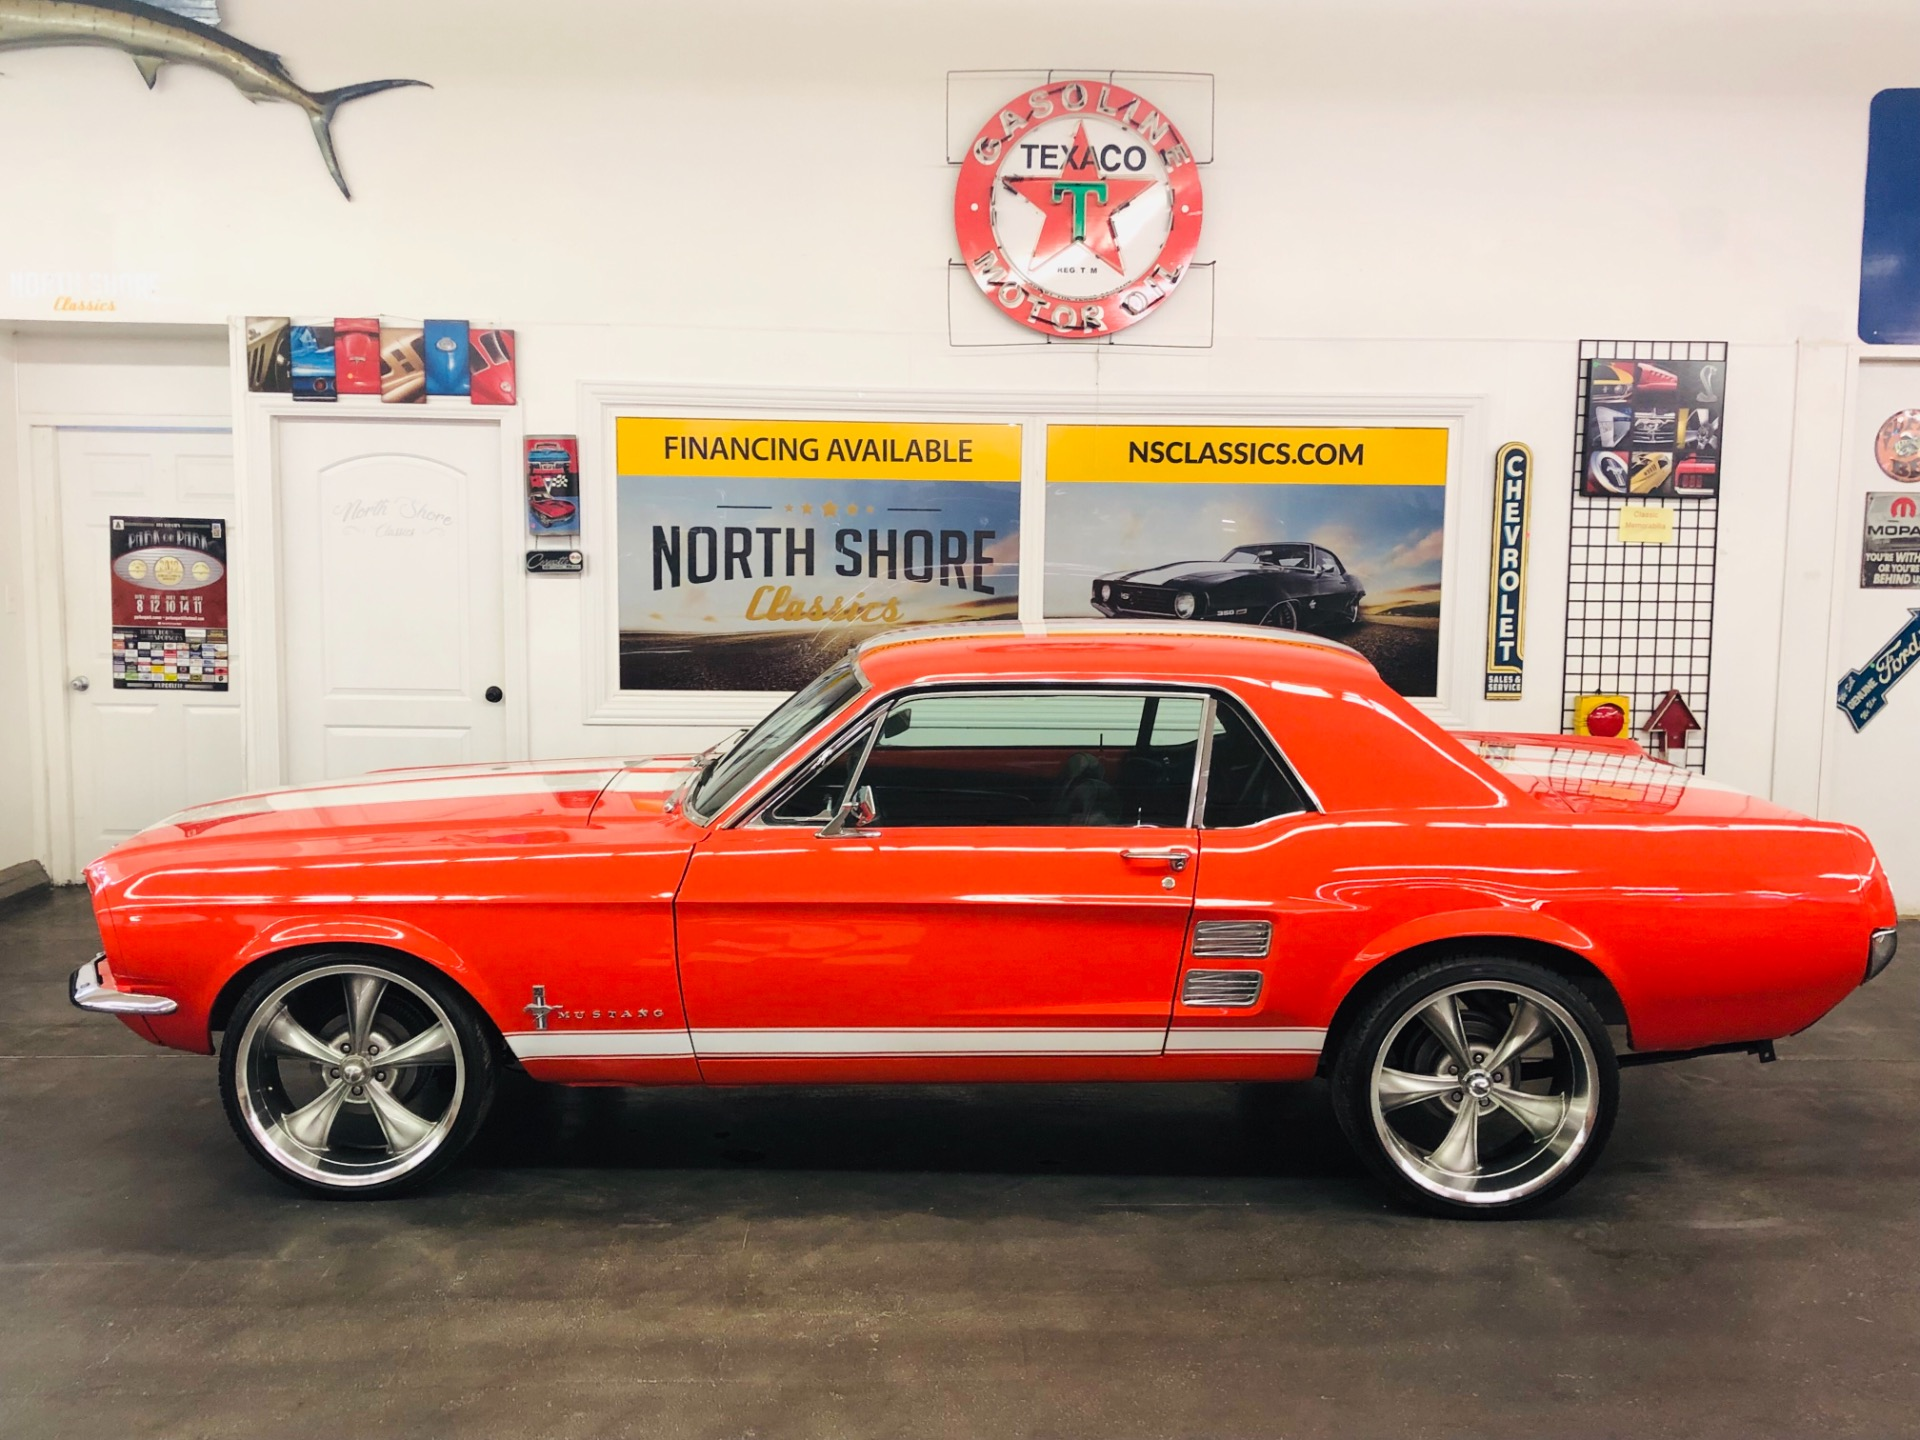 Used 1967 Ford Mustang -NICE PAINT- V8 ENGINE-C CODE 289 WITH AC-SOLID CLASSIC-SEE VIDEO | Mundelein, IL